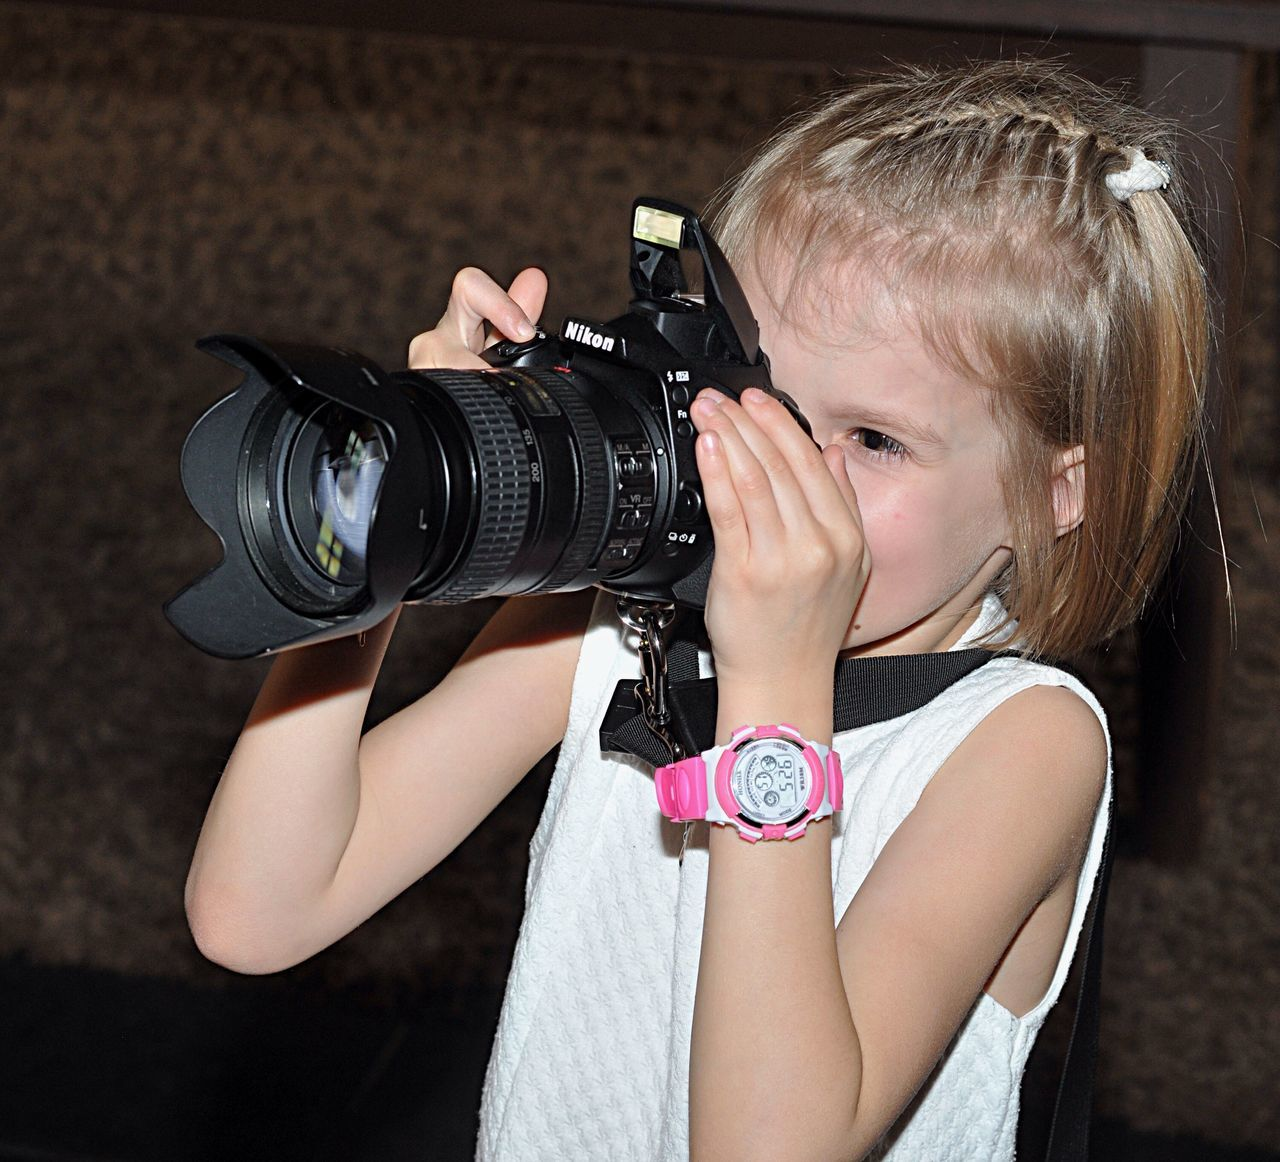 camera - photographic equipment, girls, photography themes, childhood, blond hair, one person, photographing, digital camera, child, technology, arts culture and entertainment, portrait, real people, children only, digital single-lens reflex camera, movie camera, outdoors, close-up, day, people